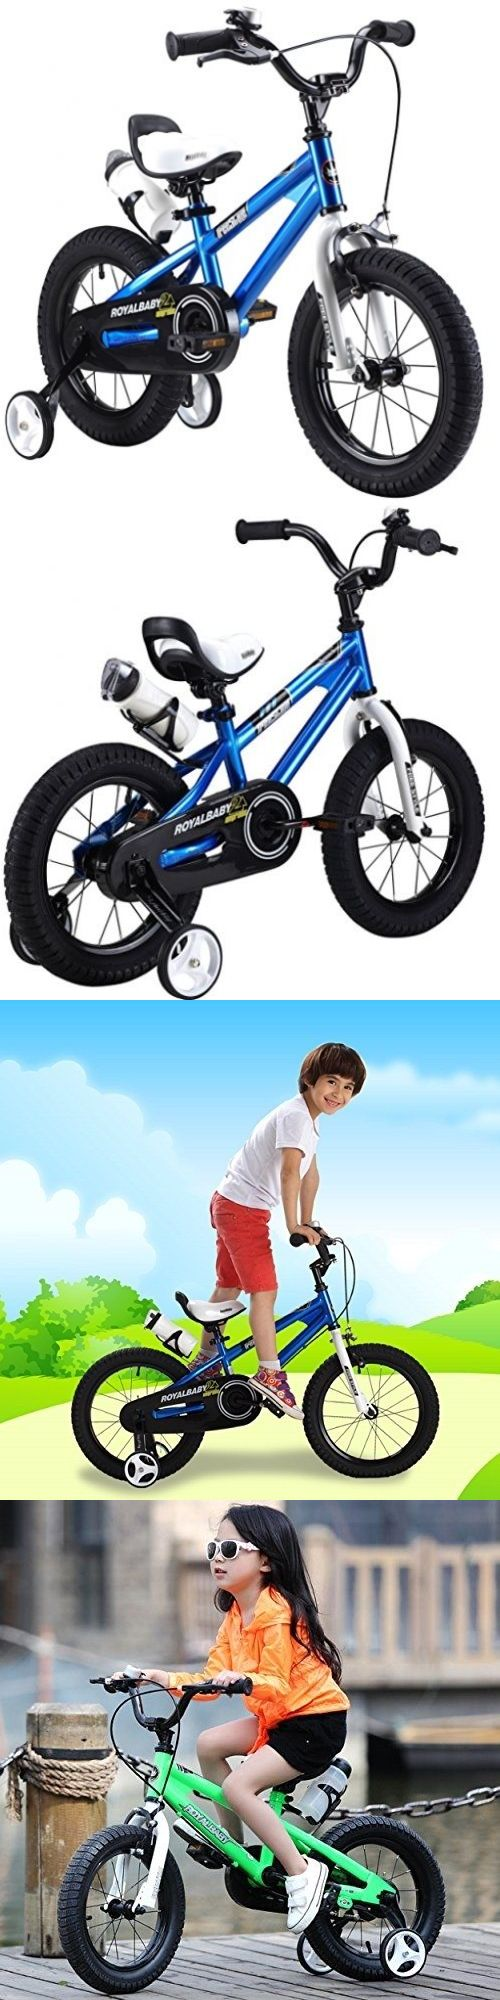 Training Wheels 177839: Boys And Girls Bmx Bike 16 Inch Sport Bicycle Adjustable Seat Sturdy Heavy Duty BUY IT NOW ONLY: $128.98